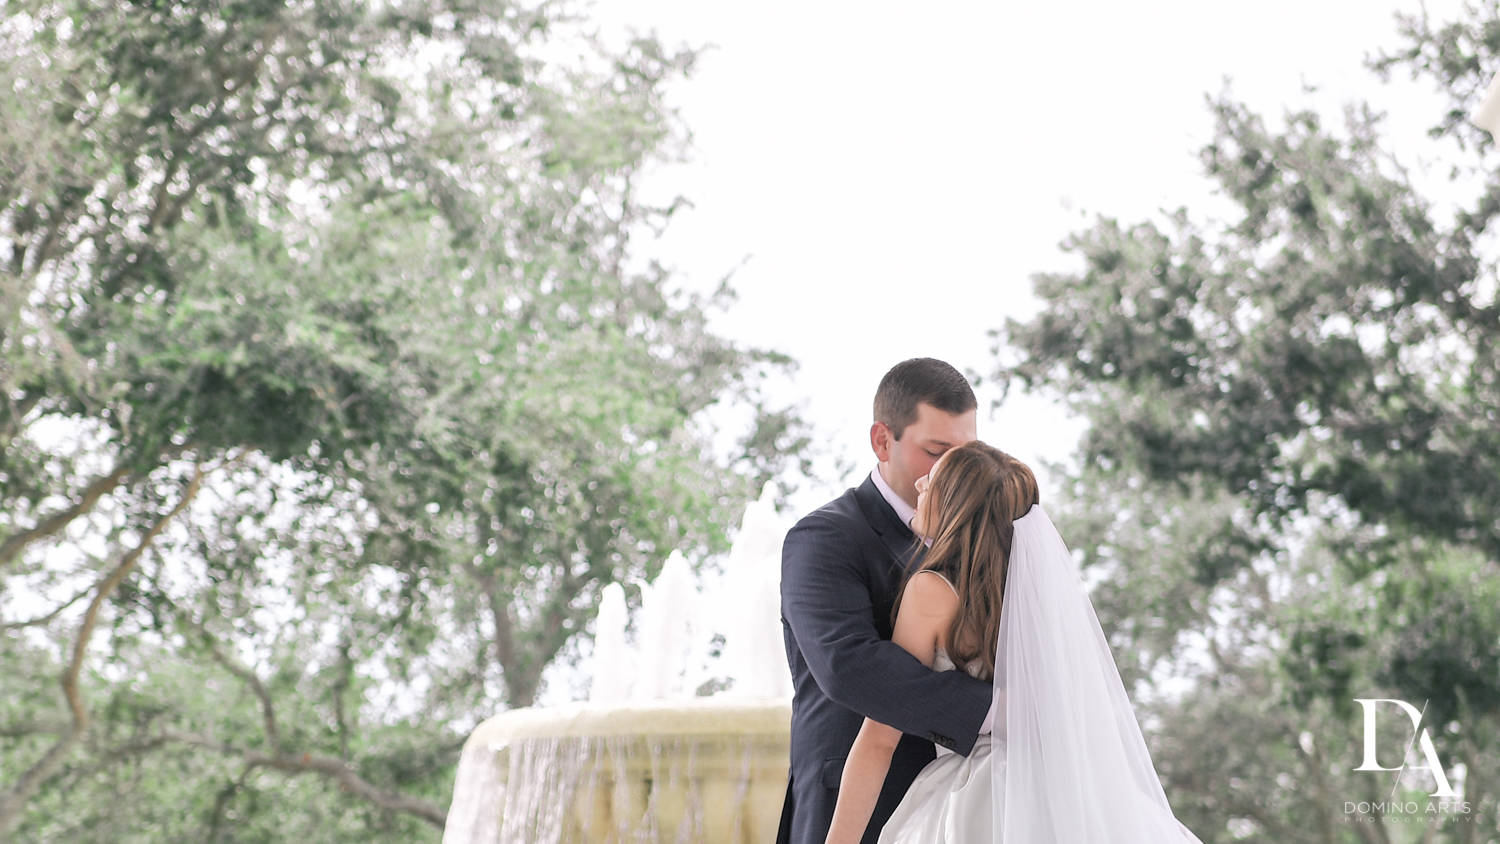 first look at Beautiful Intimate Wedding at Mizner Country Club by Domino Arts Photography